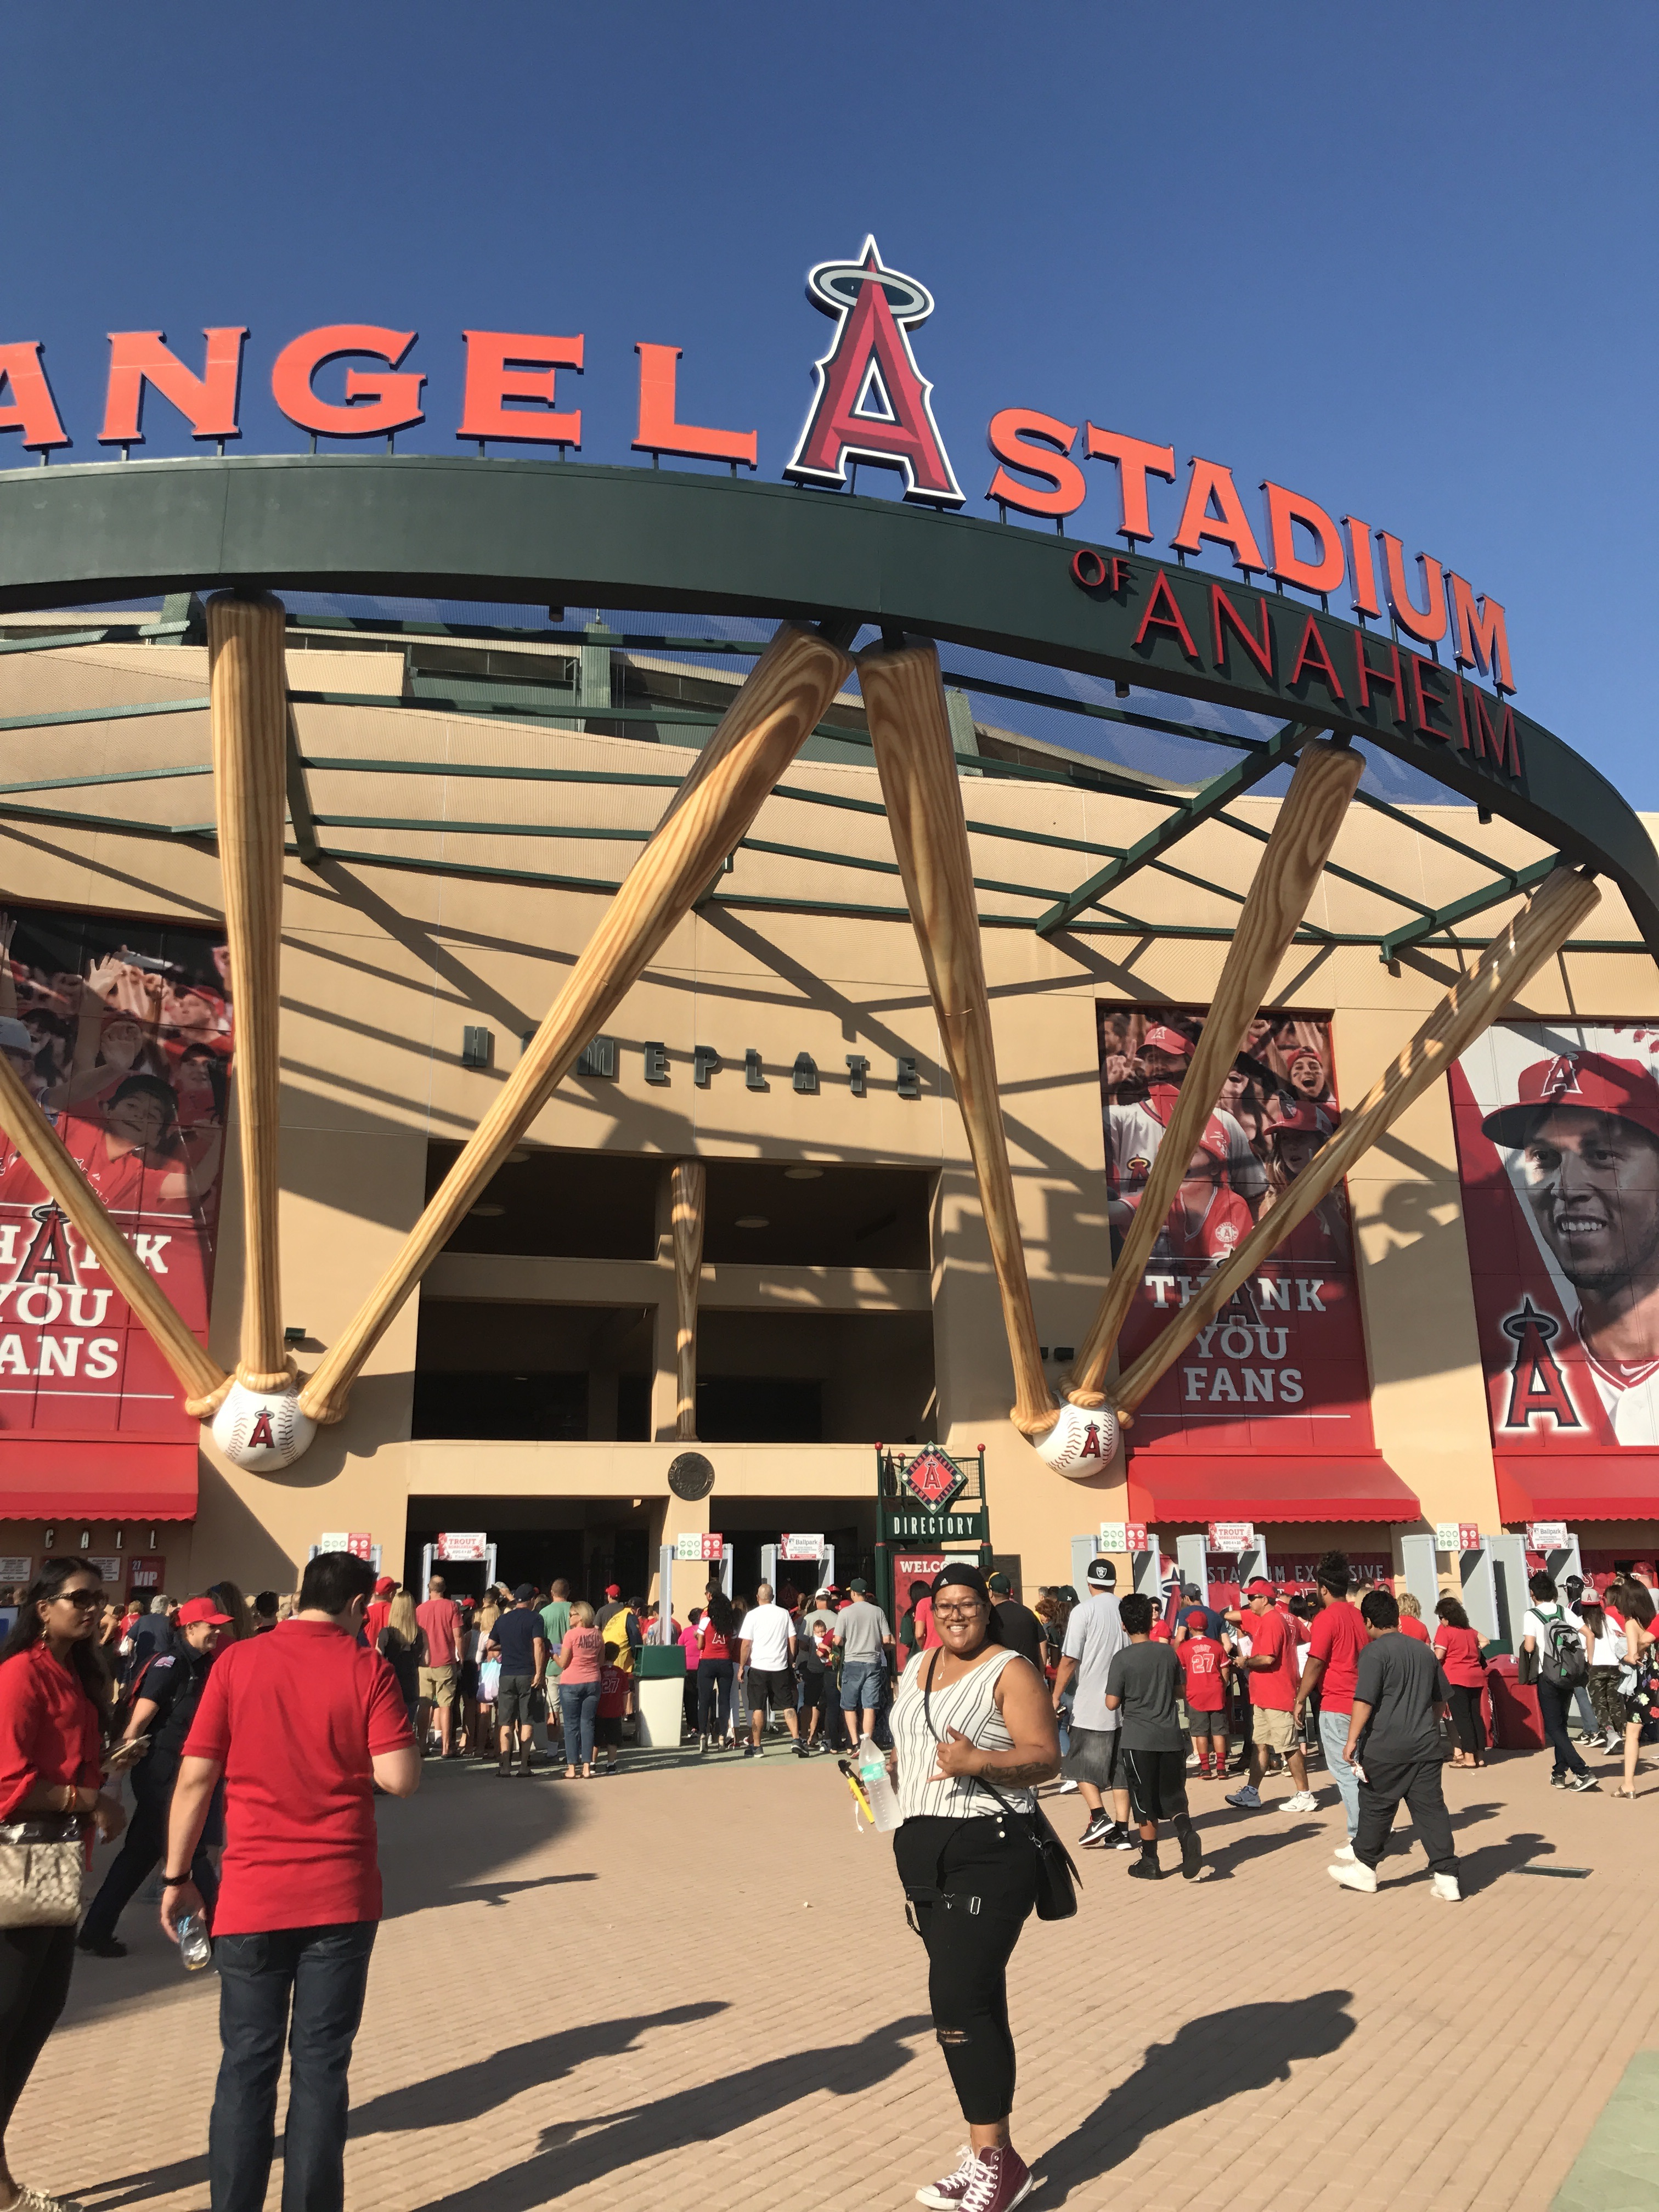 LA Angels Baseball Games